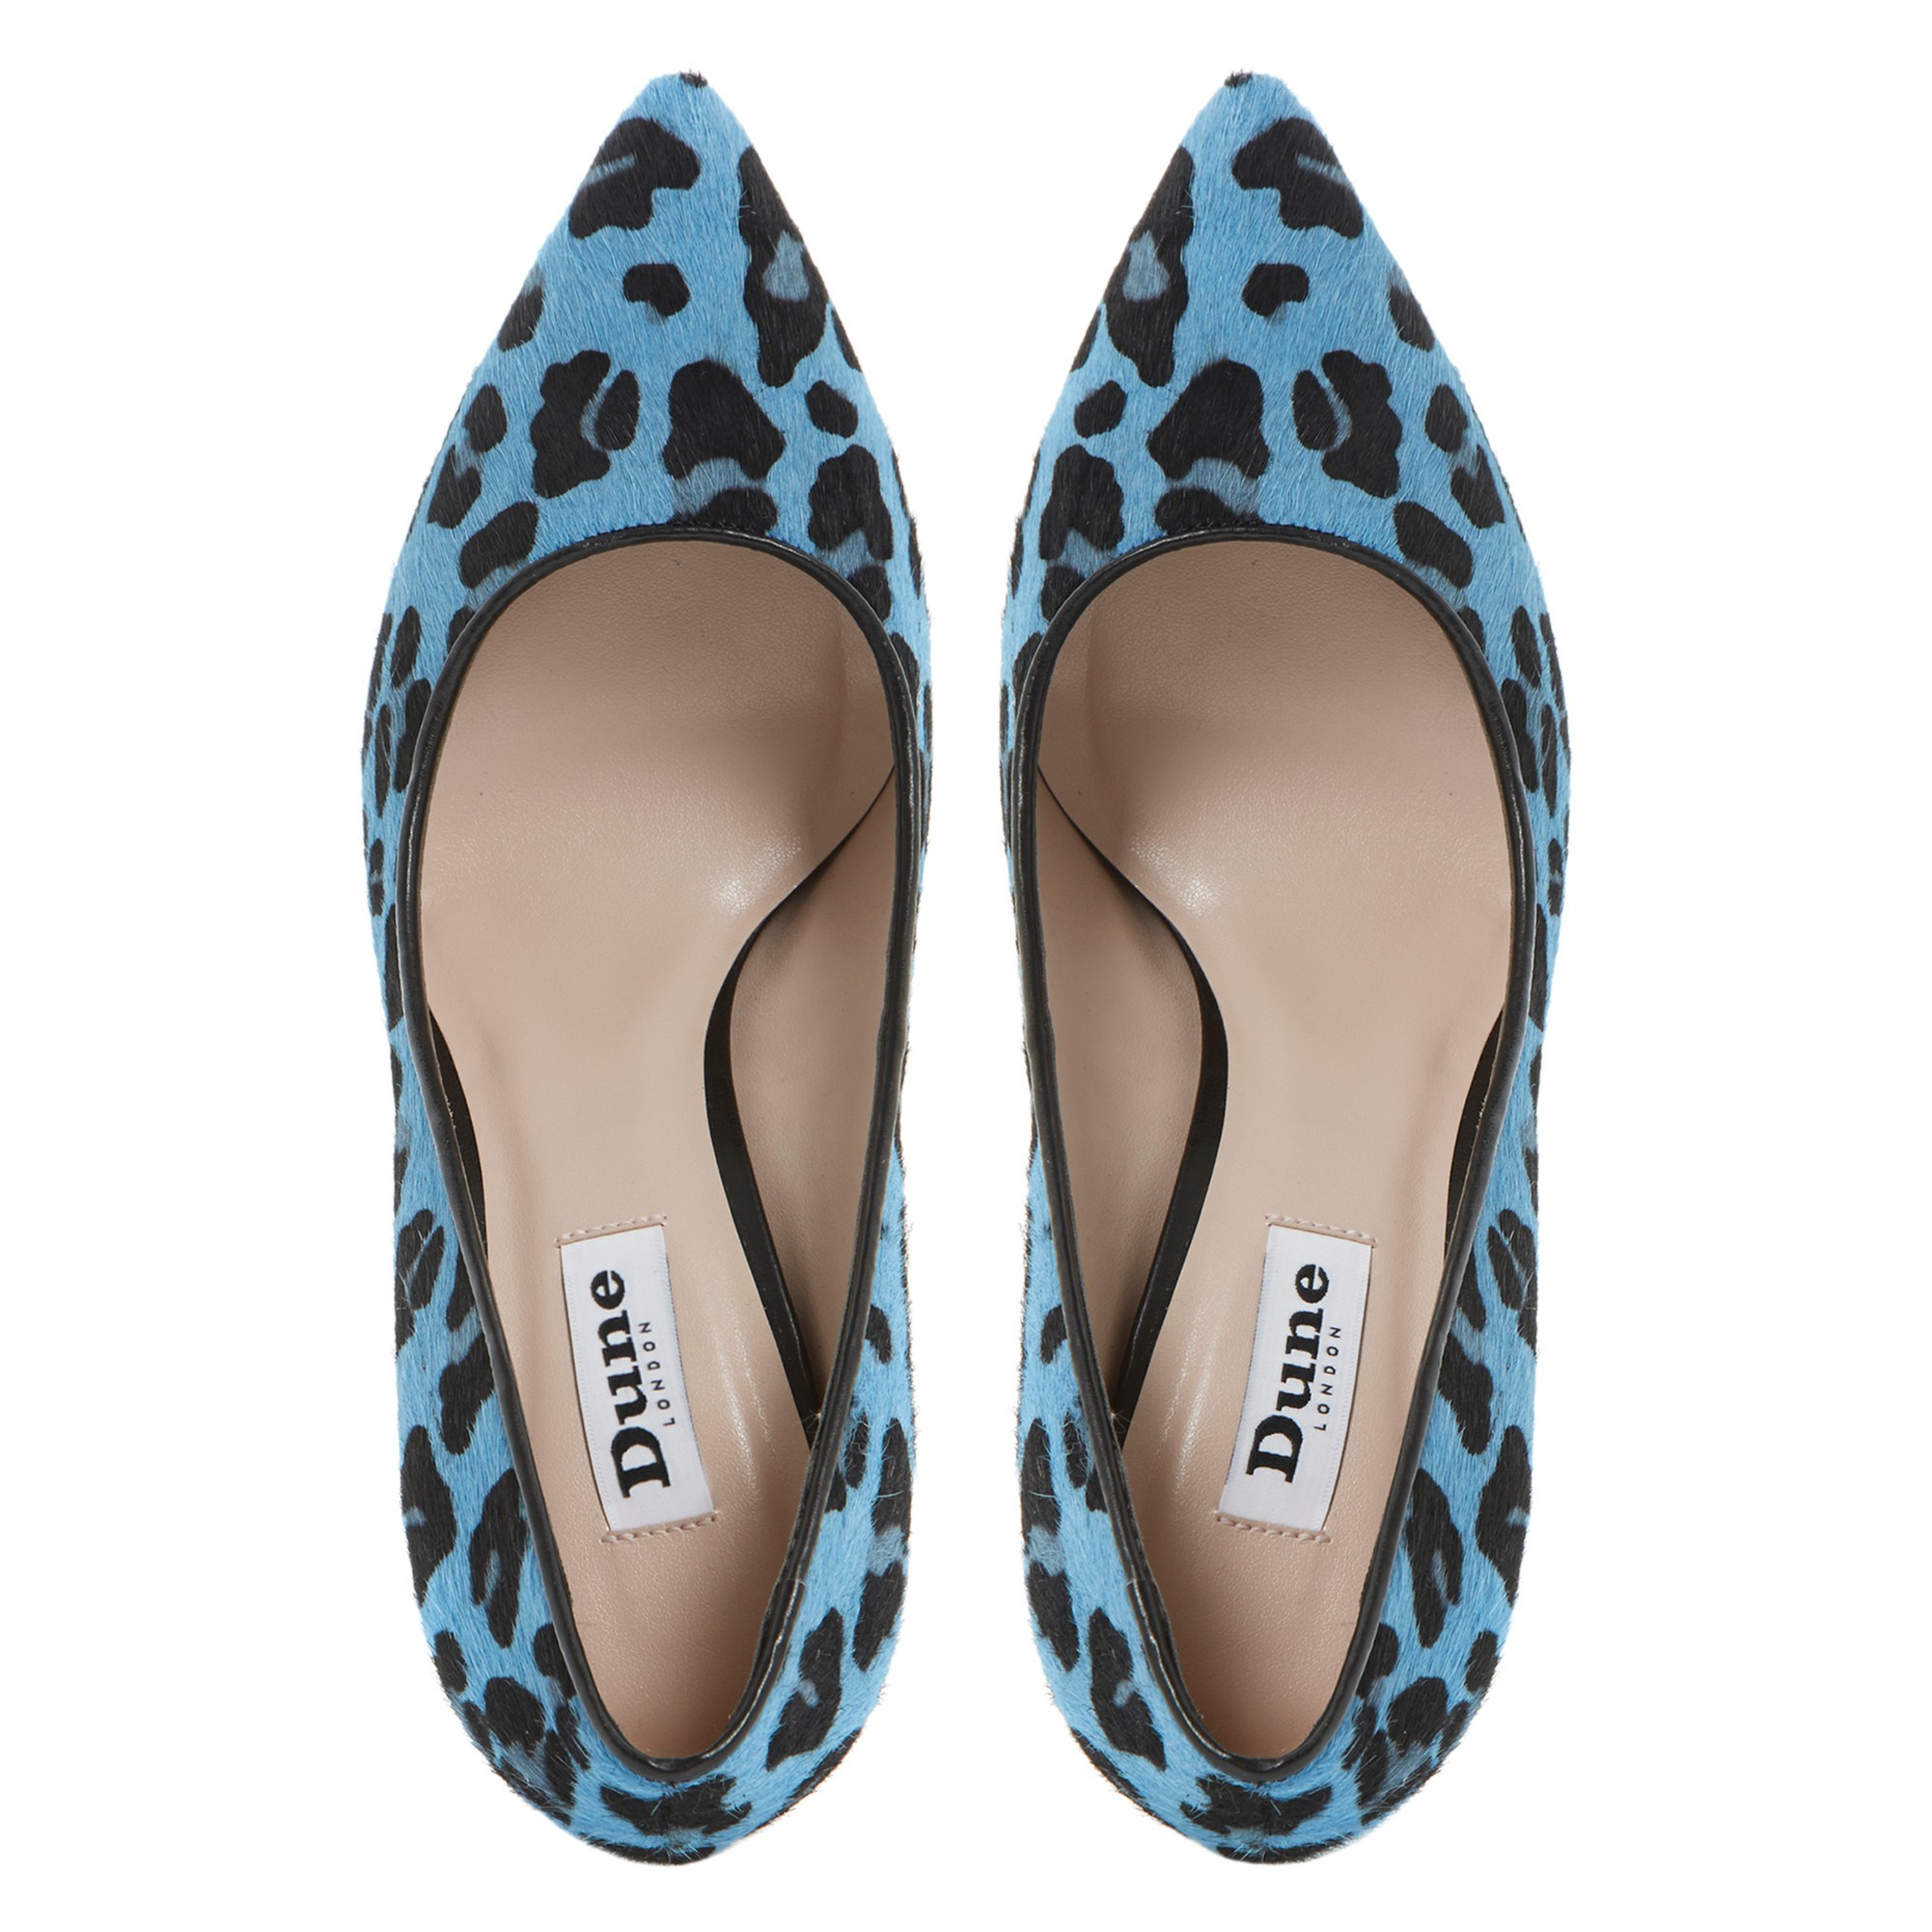 cae4dab8754 Dune Anabel Leopard Print Pony Pointed Toe Court Shoes in Blue - Lyst